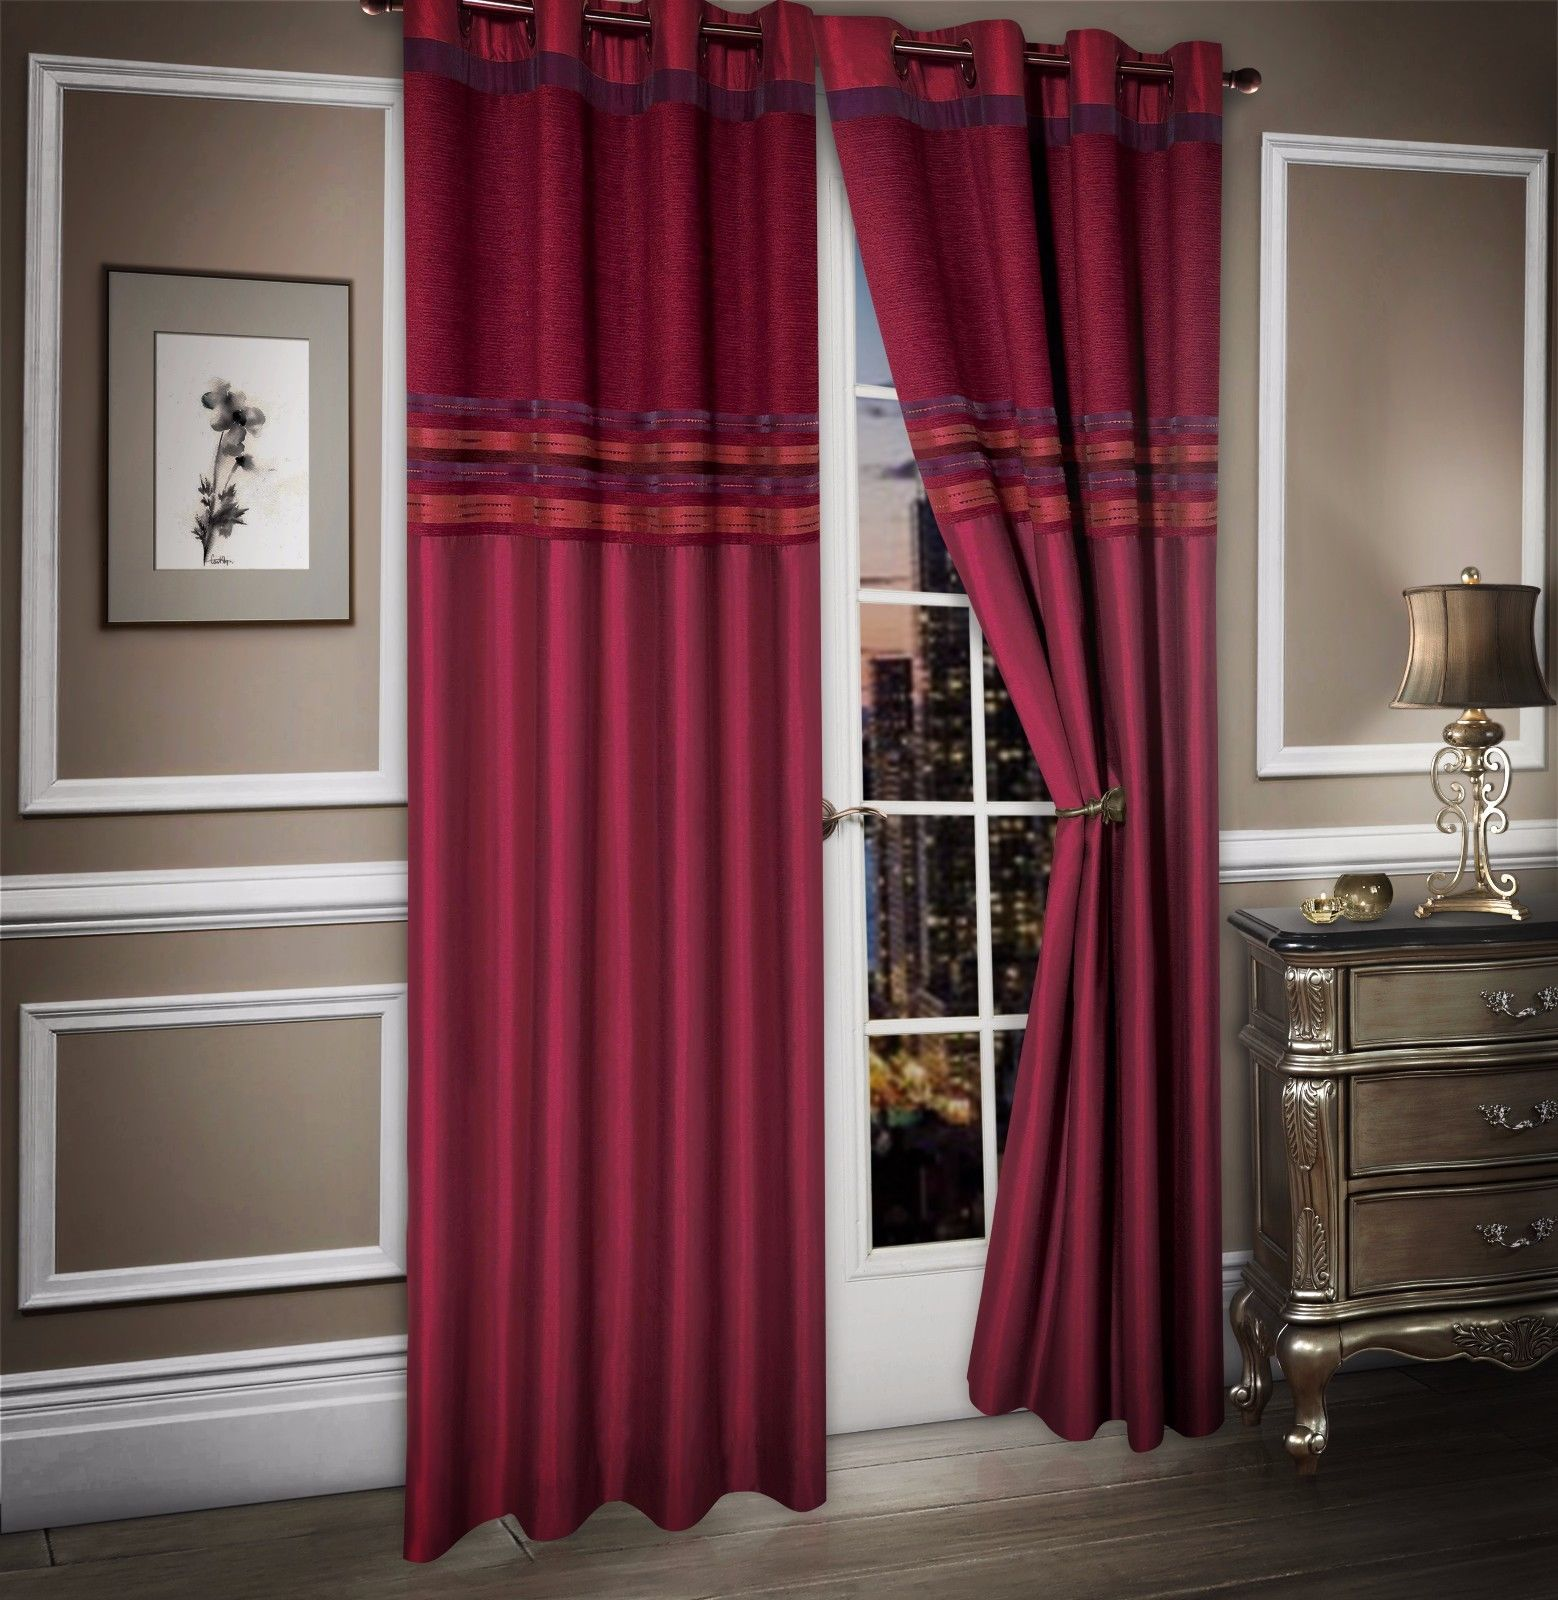 STYLISH MODERN 2 TONE CHENILLE FAUX SILK RINGTOP EYELETS LINED CURTAINS BURGUNDY COLOUR